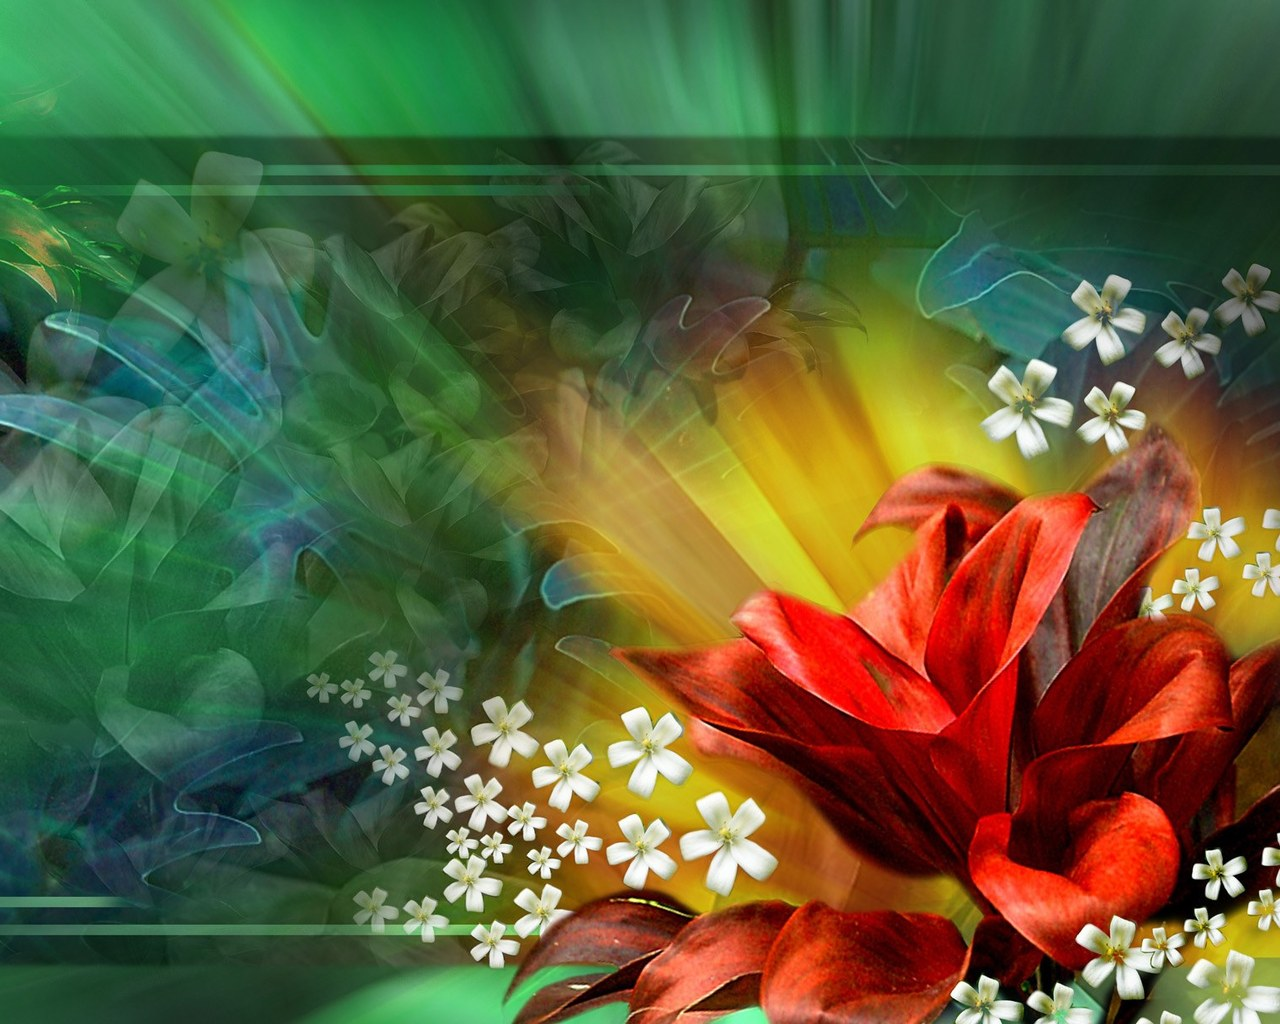 Desktop Backgrounds · Wallpaper PC · 3D-Graphics Cherry Free 3d wallpaper